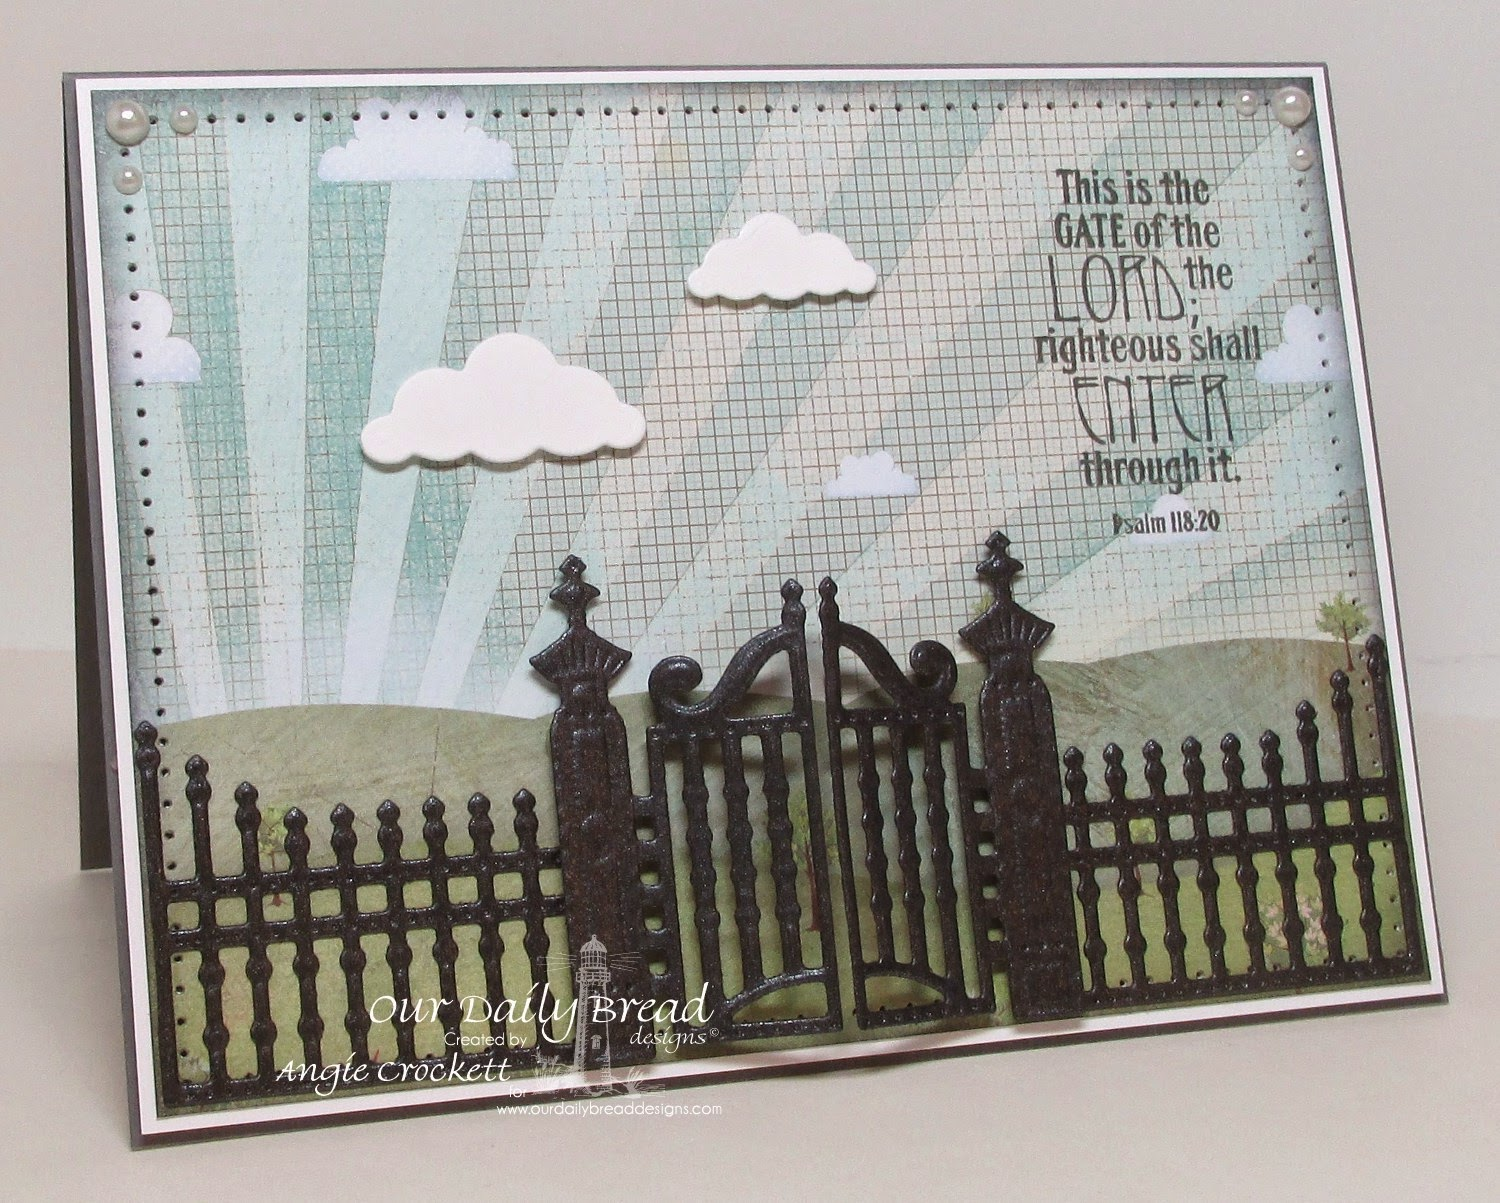 Our Daily Bread designs The Gate, ODBD Custom Gilded Gate Die, Card Designer Angie Crockett